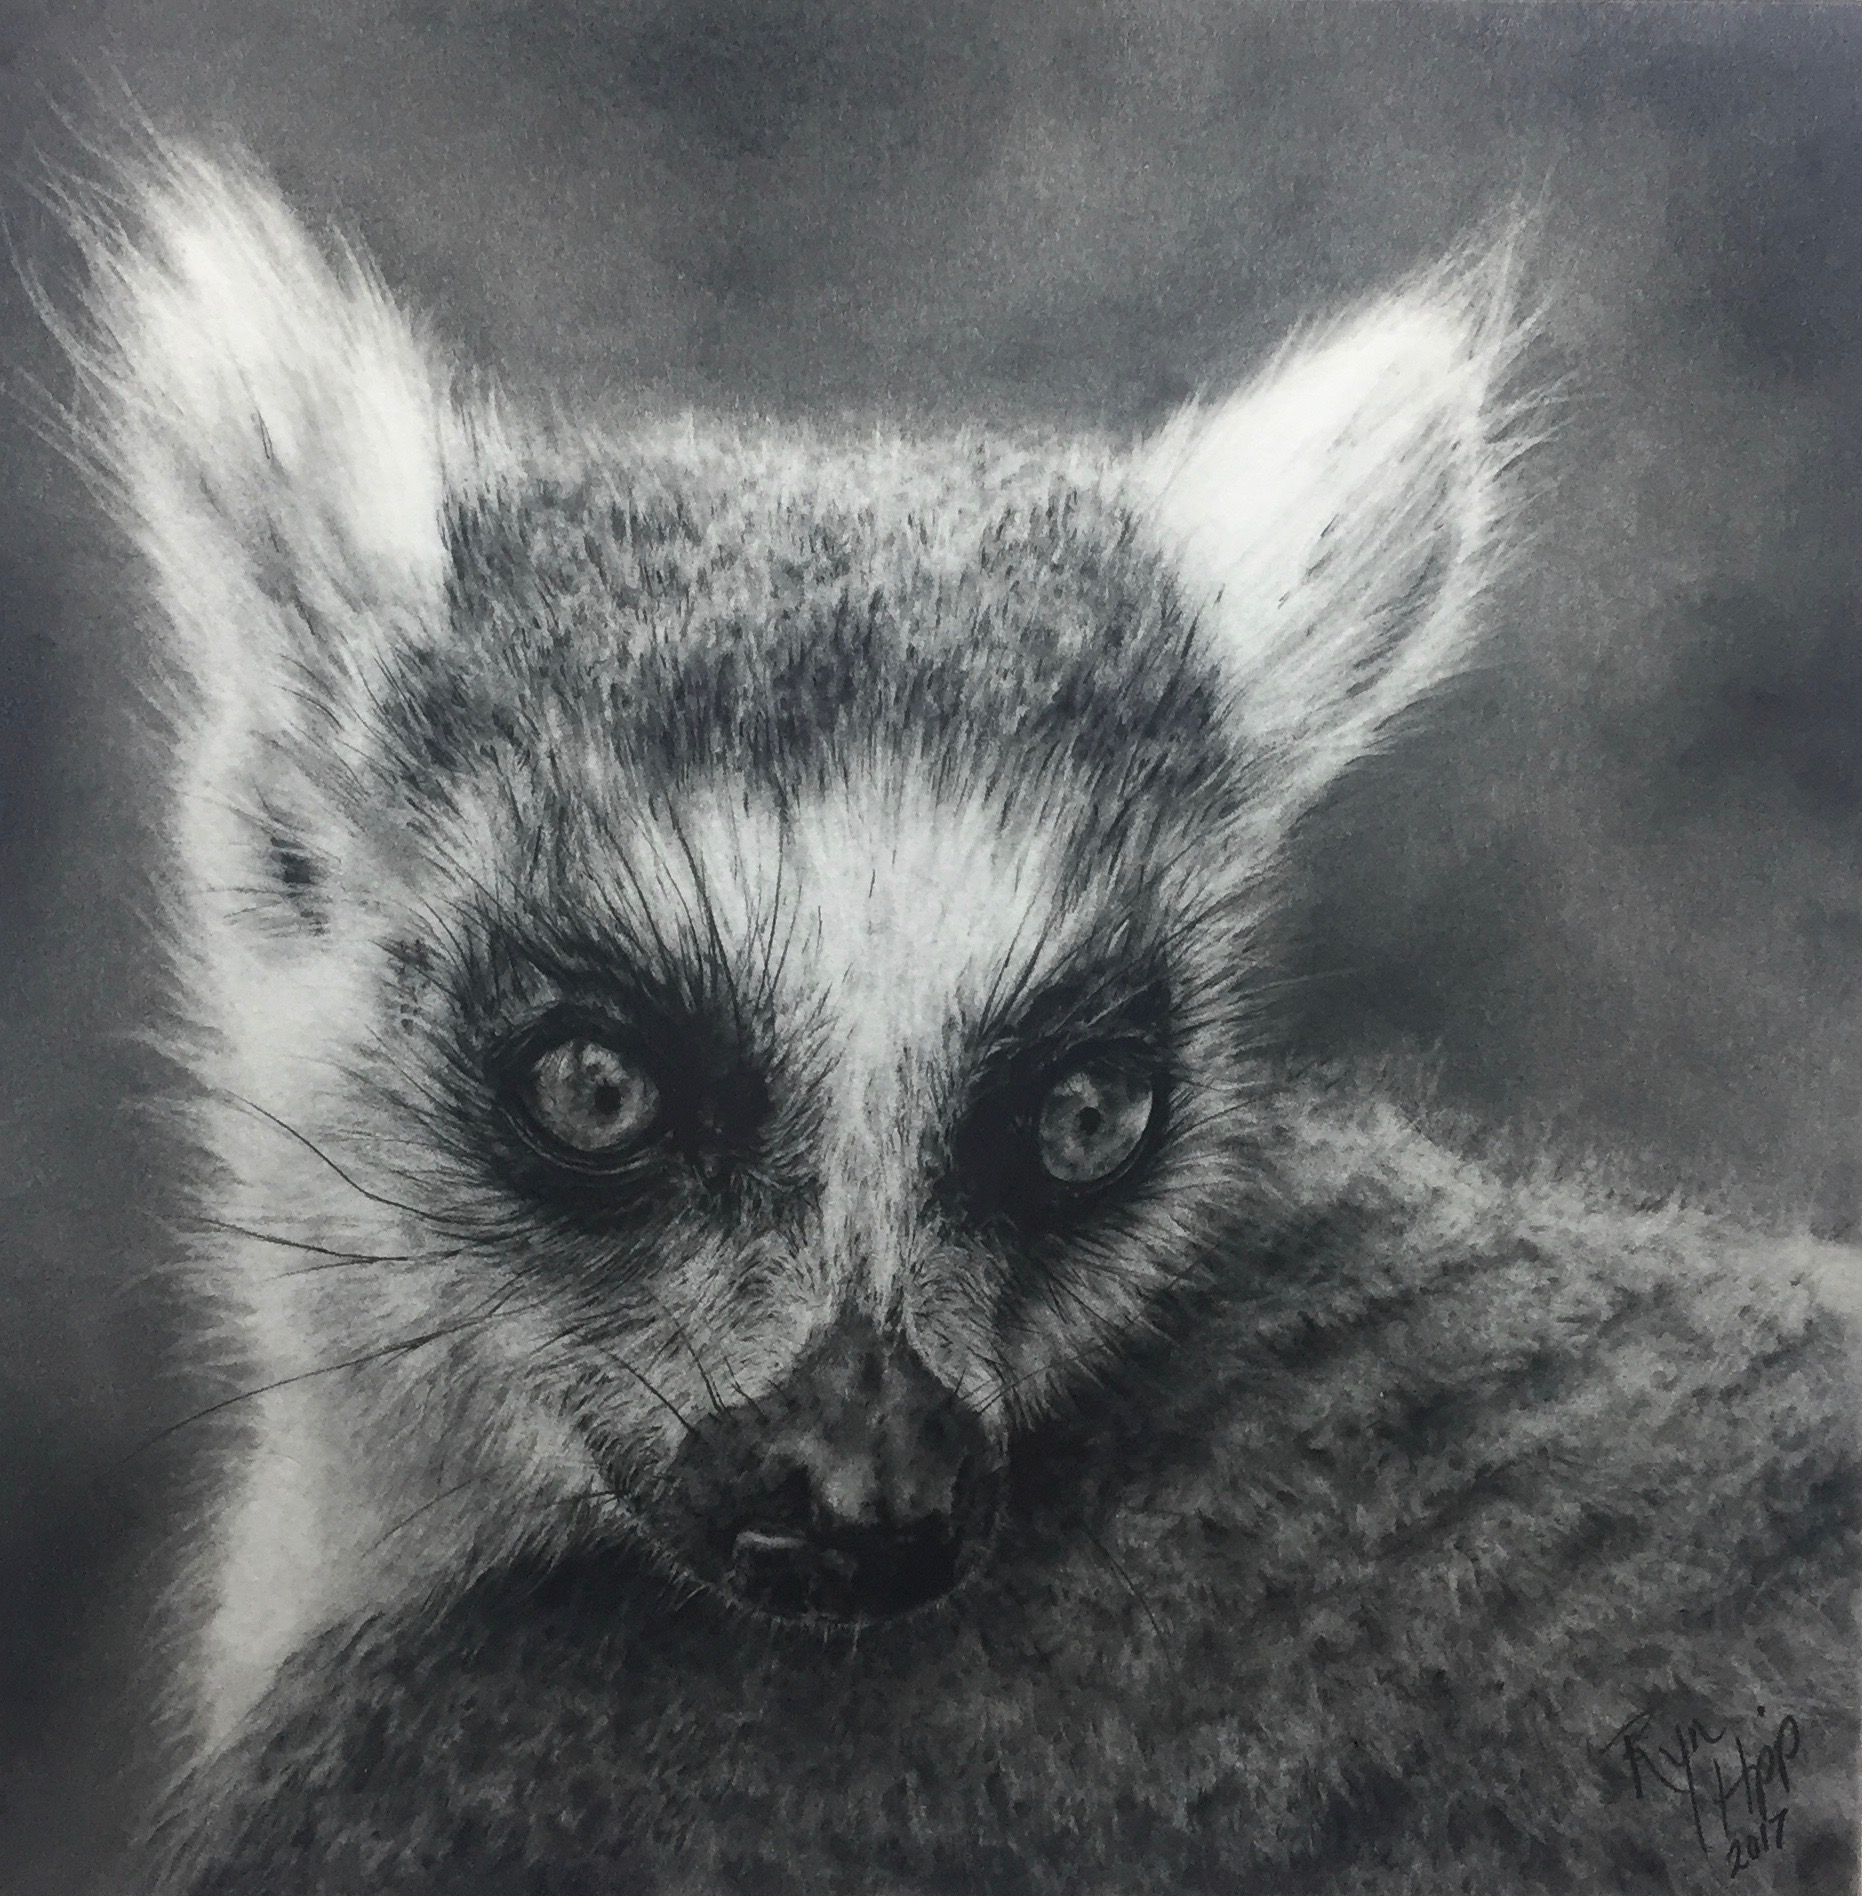 Graphite drawing of a ring-tailed lemur